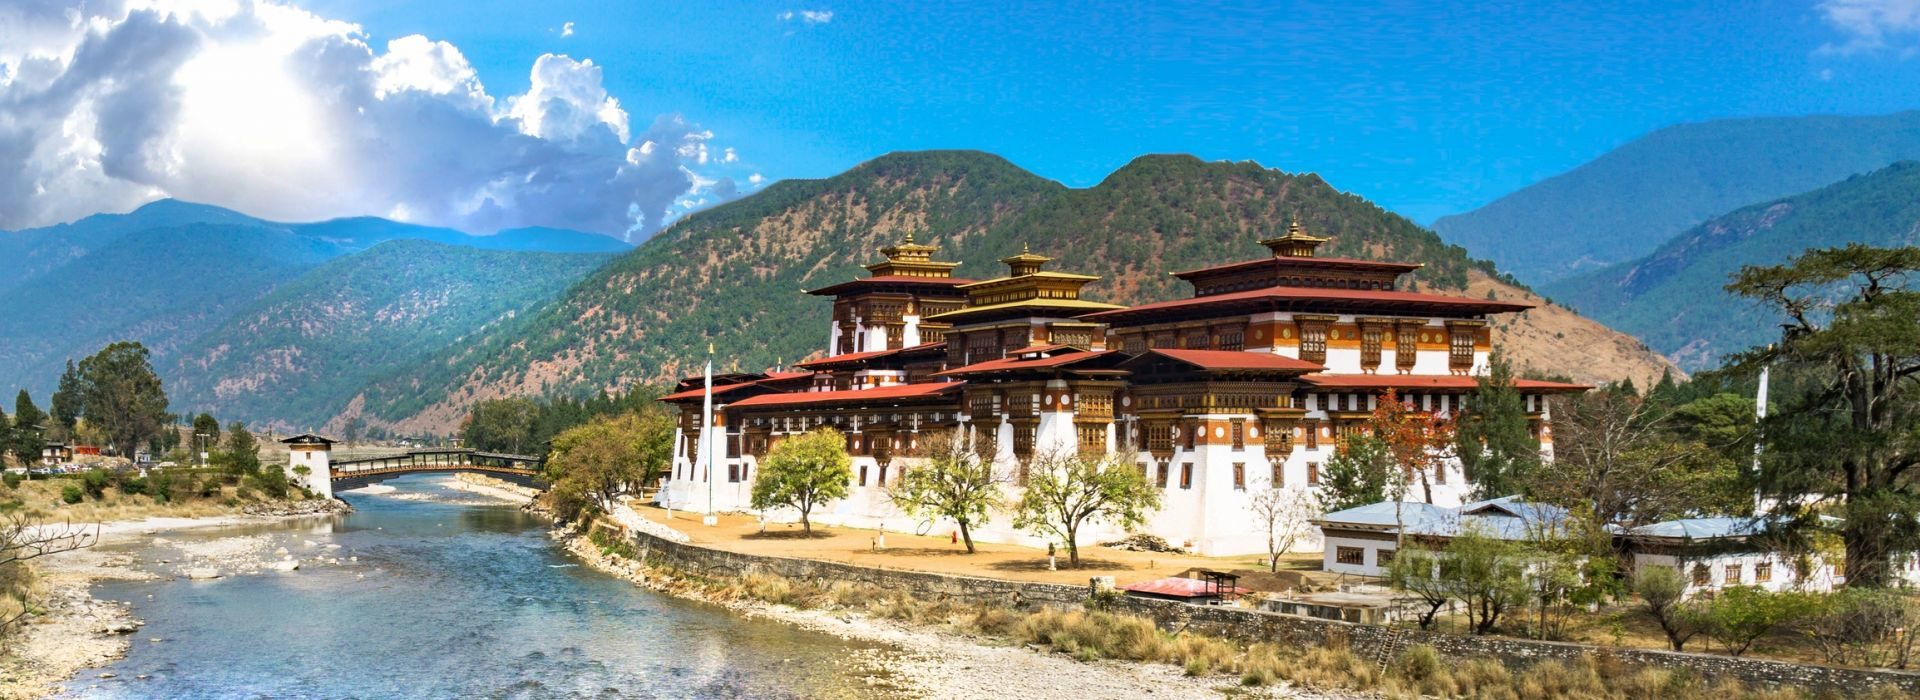 Mystical Bhutan tour – 6 Nights / 7 Days